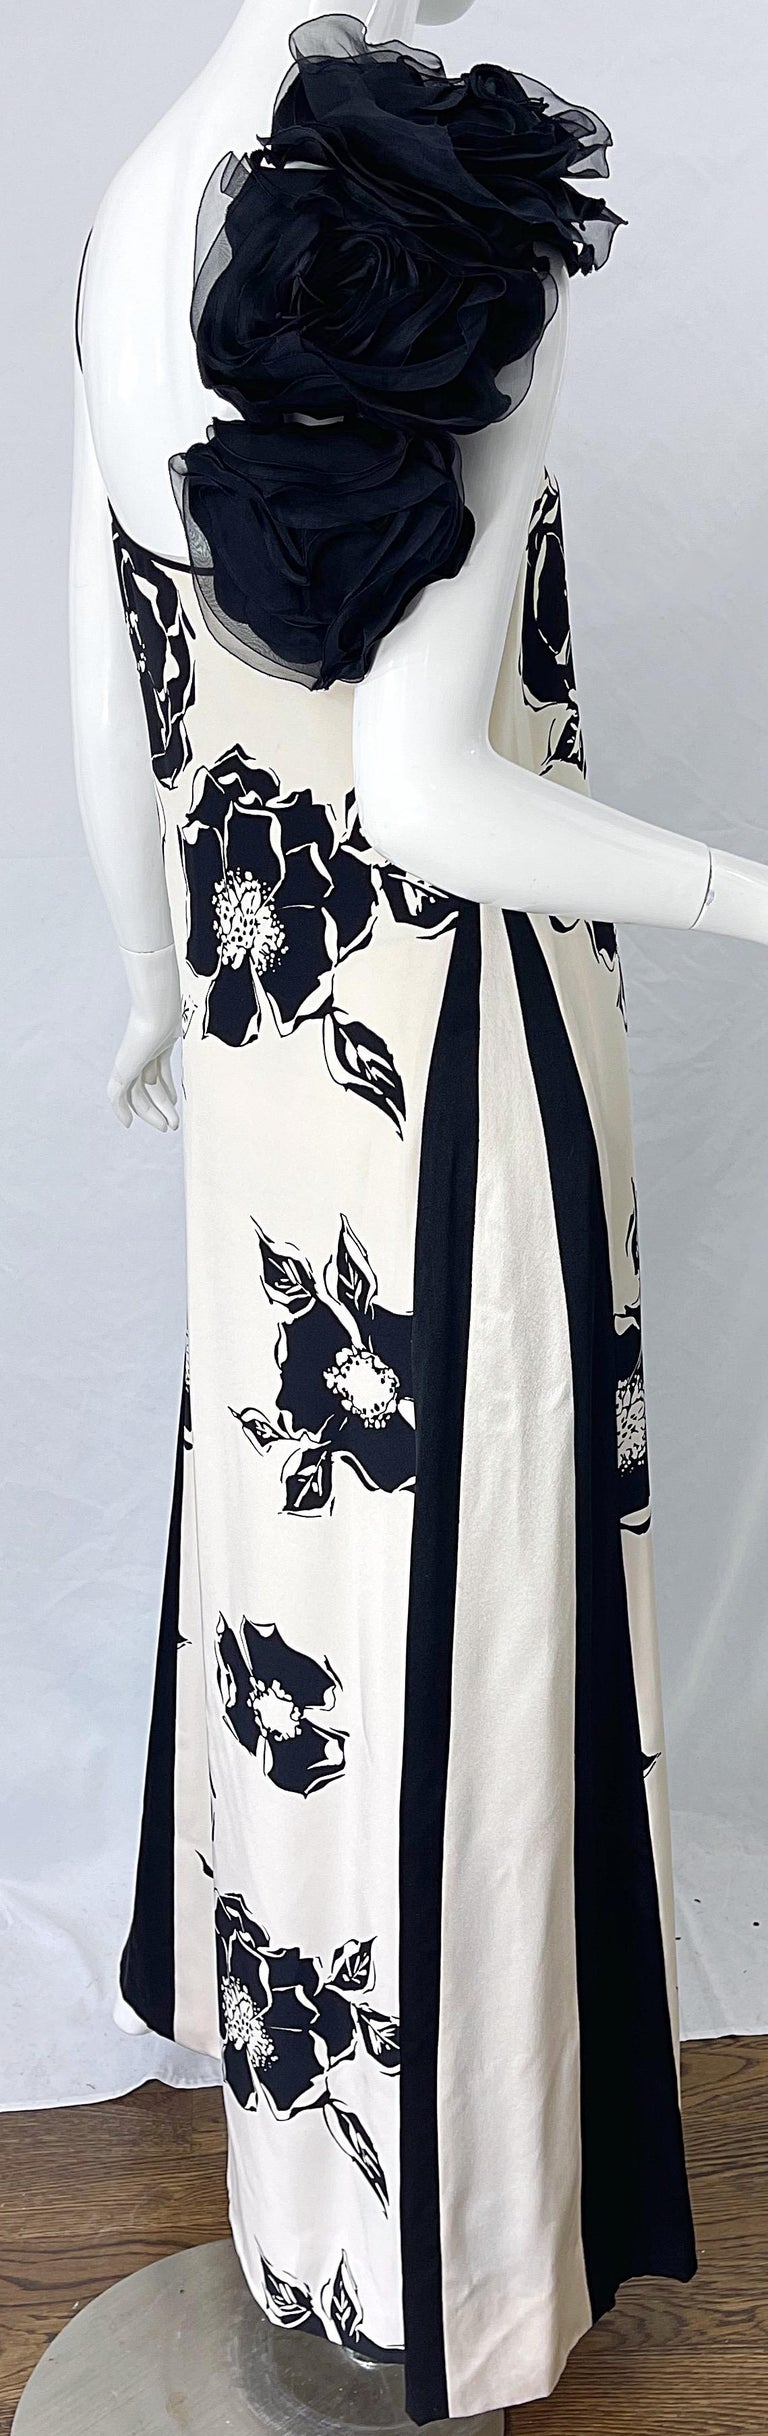 1990s James Galanos Black and White Rosette Sleeve Vintage 90s Silk Gown Dress For Sale 7